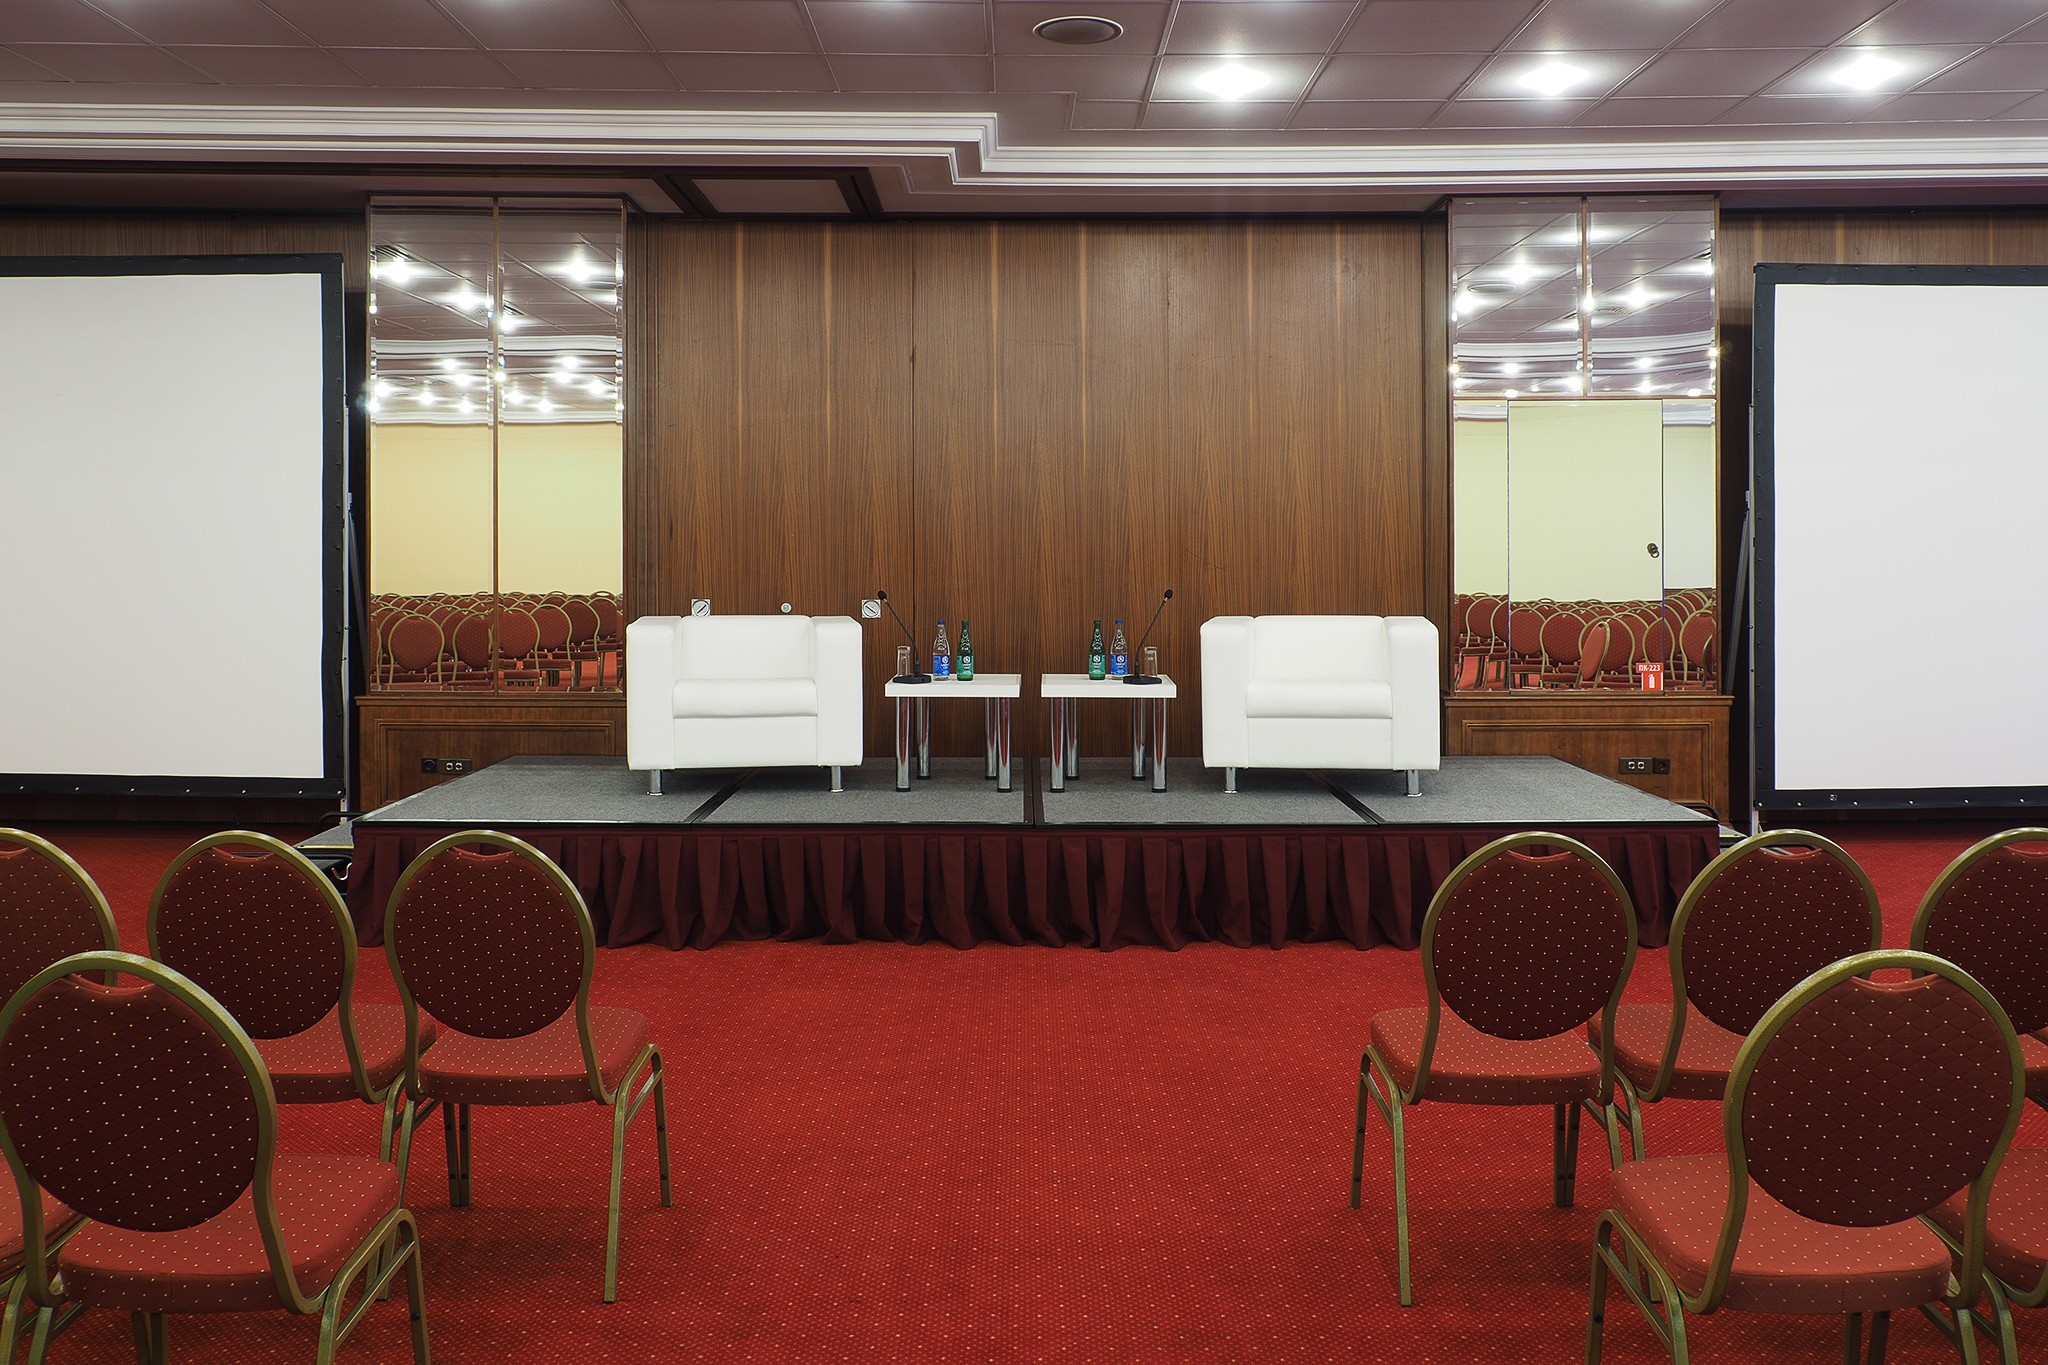 panoramic photos of conference rooms and media centers